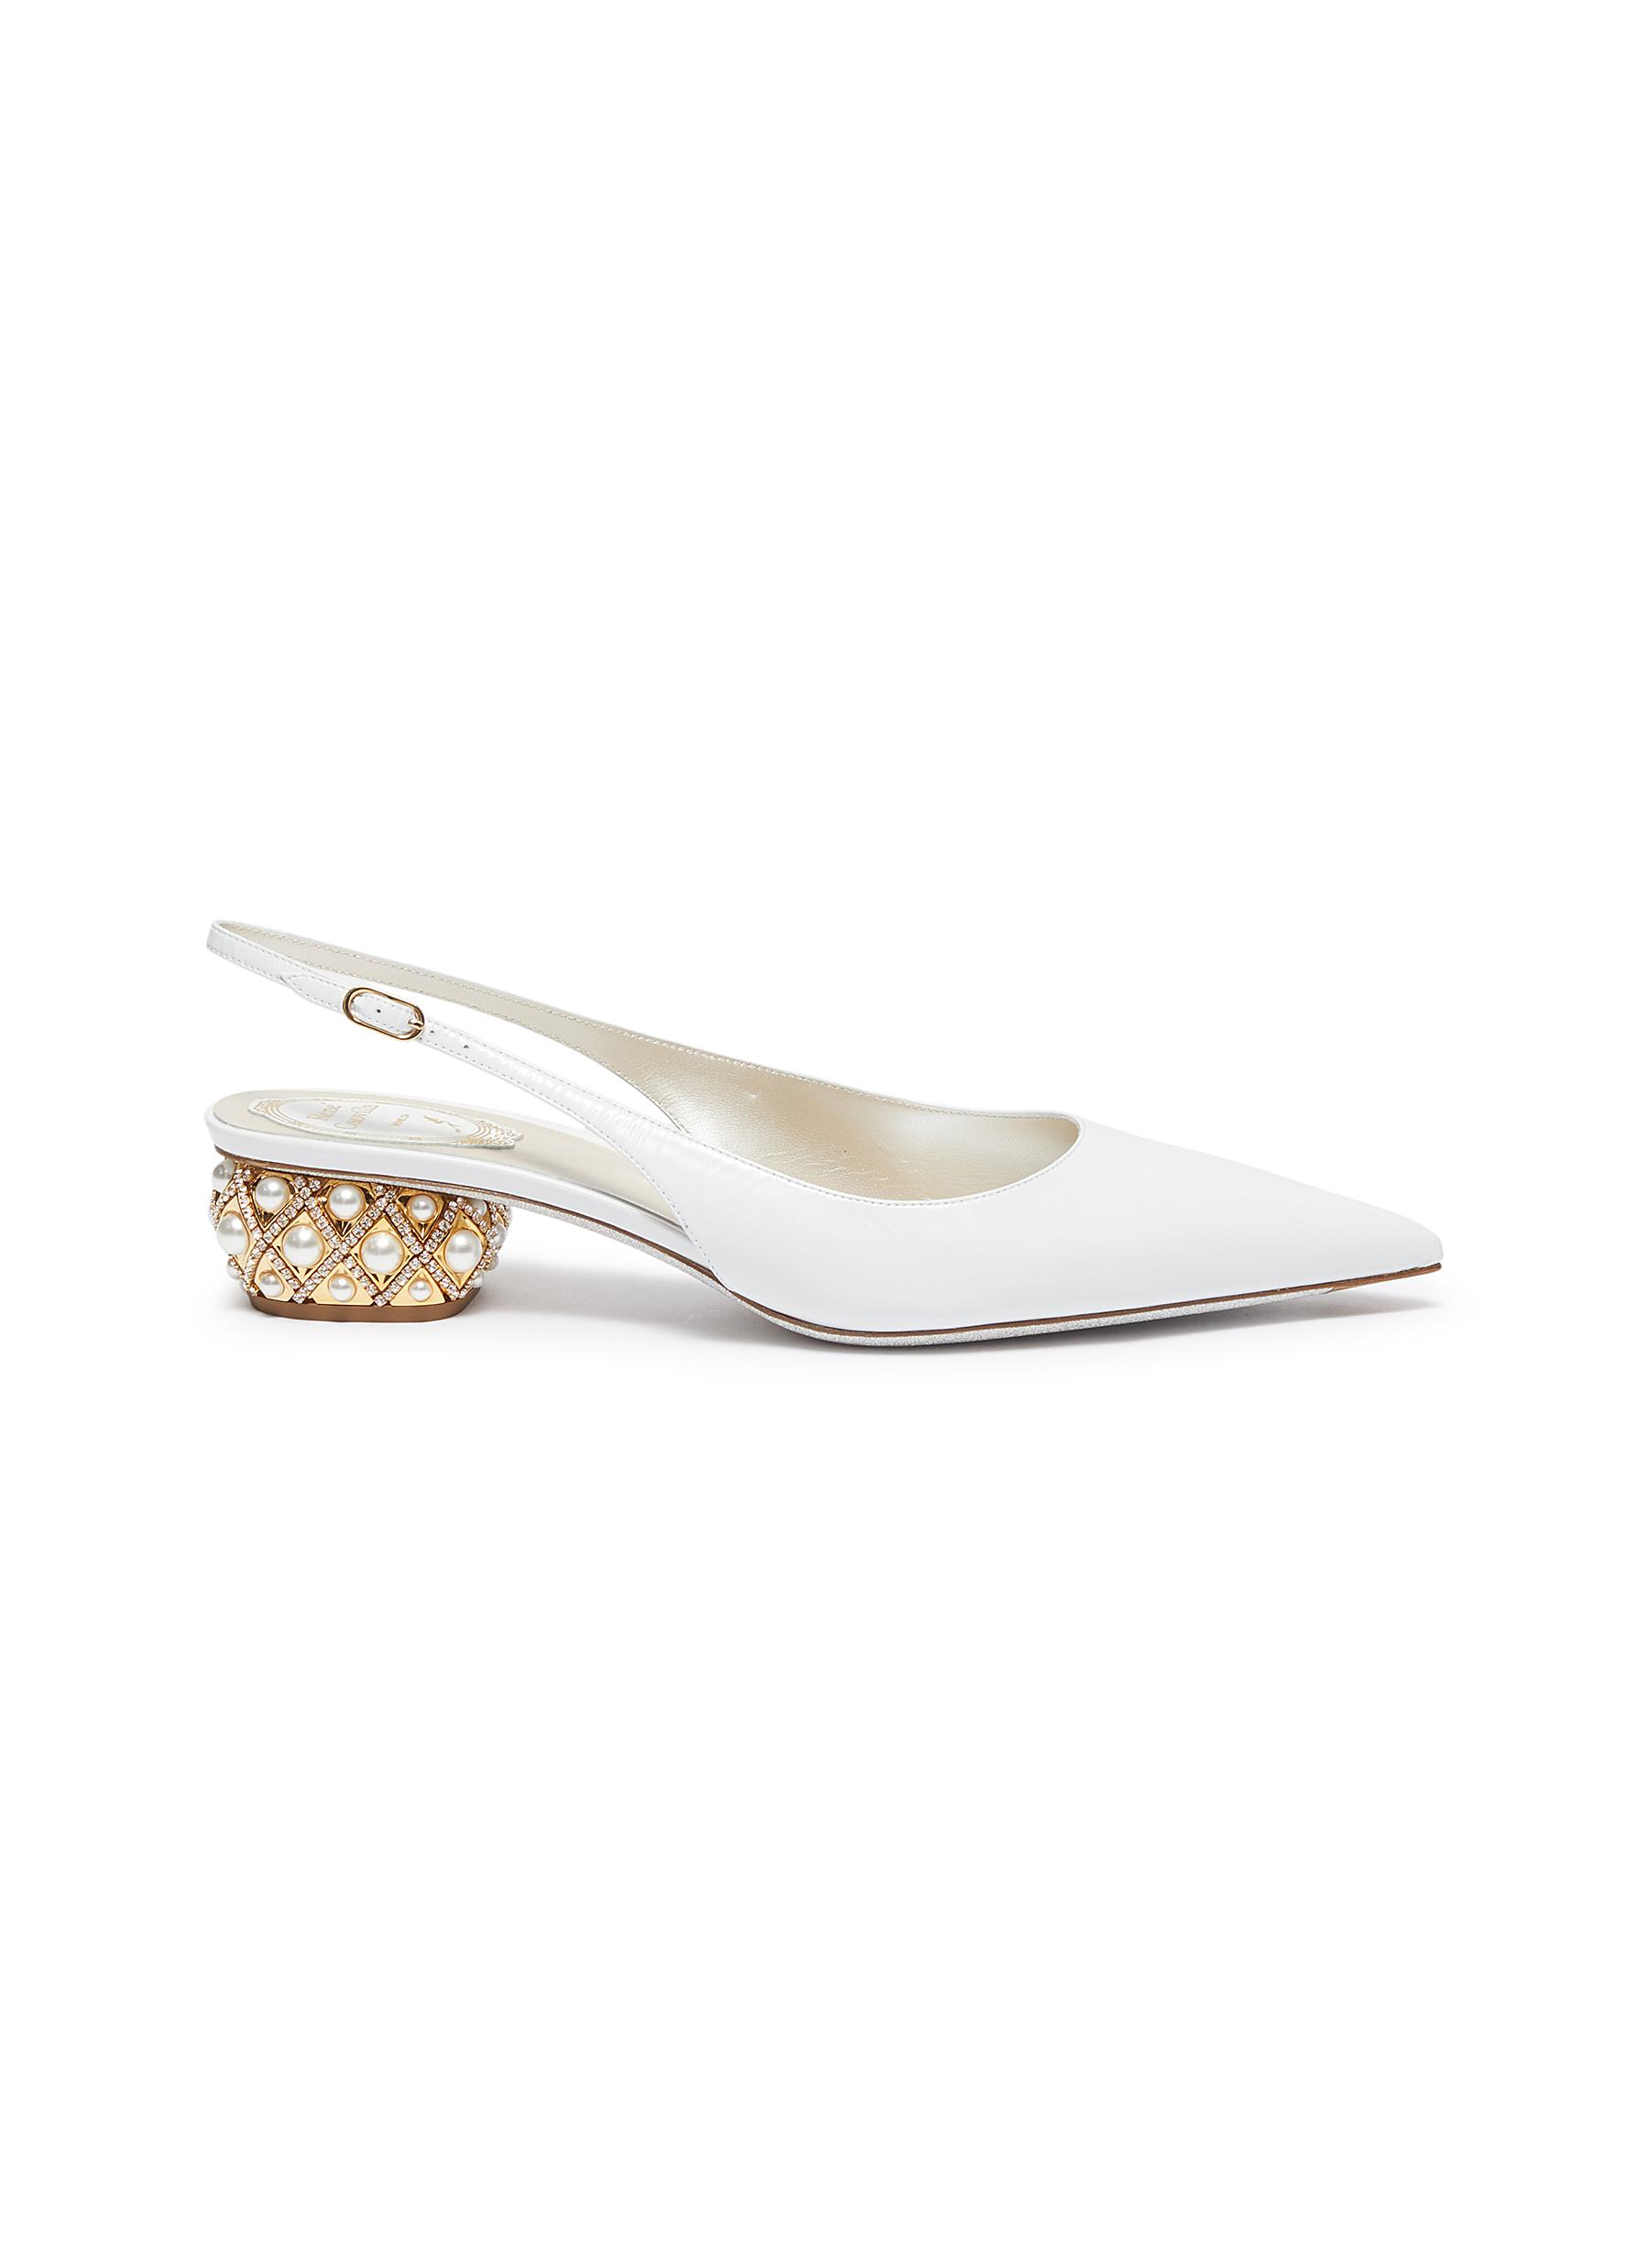 Embellished heel leather slingback pumps by René Caovilla